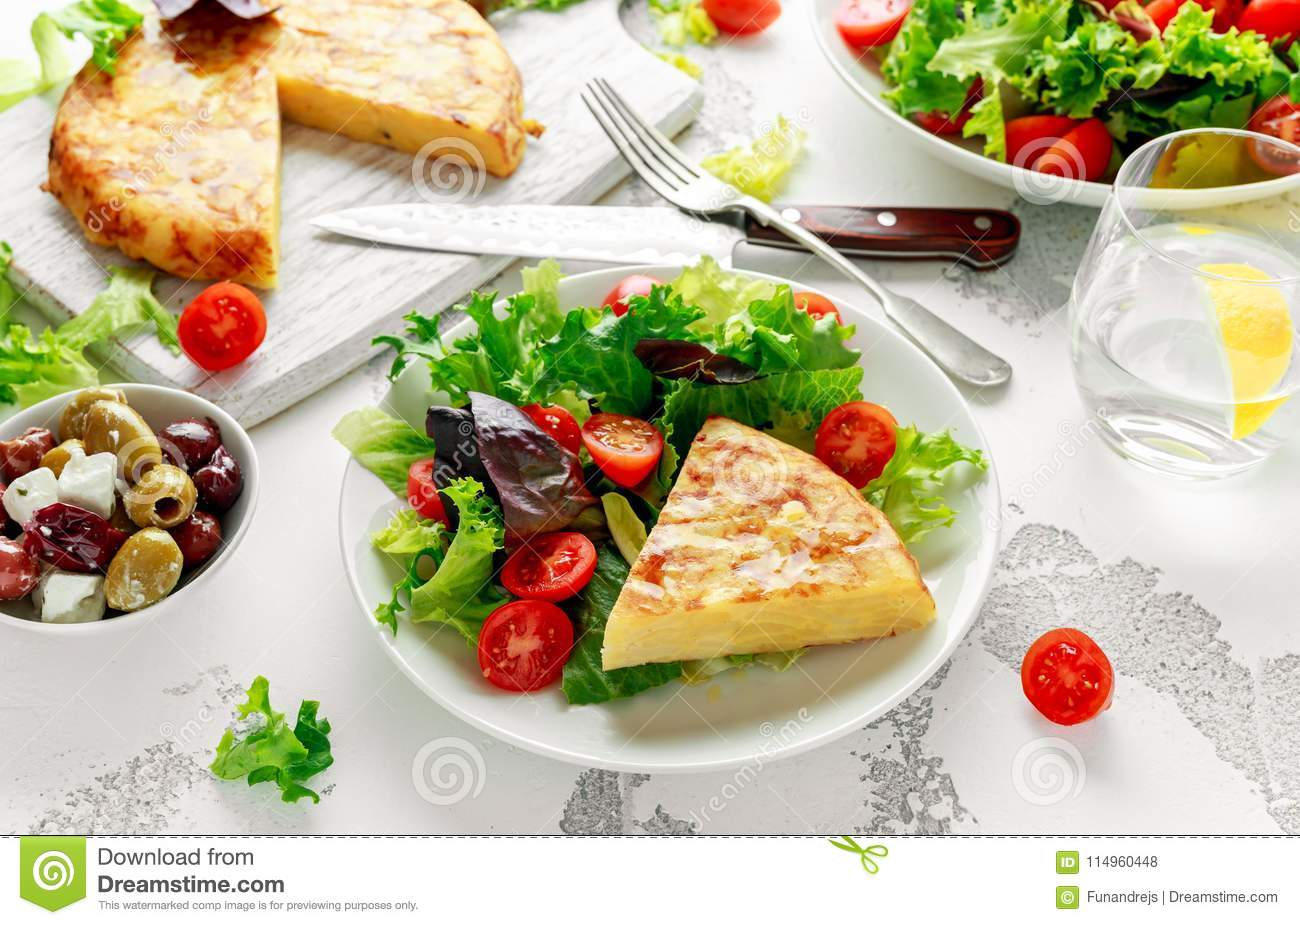 Spanish tortilla, omelette with potato, onion, vegetables, tomatoes, olives and herbs in a white plate. breakfast